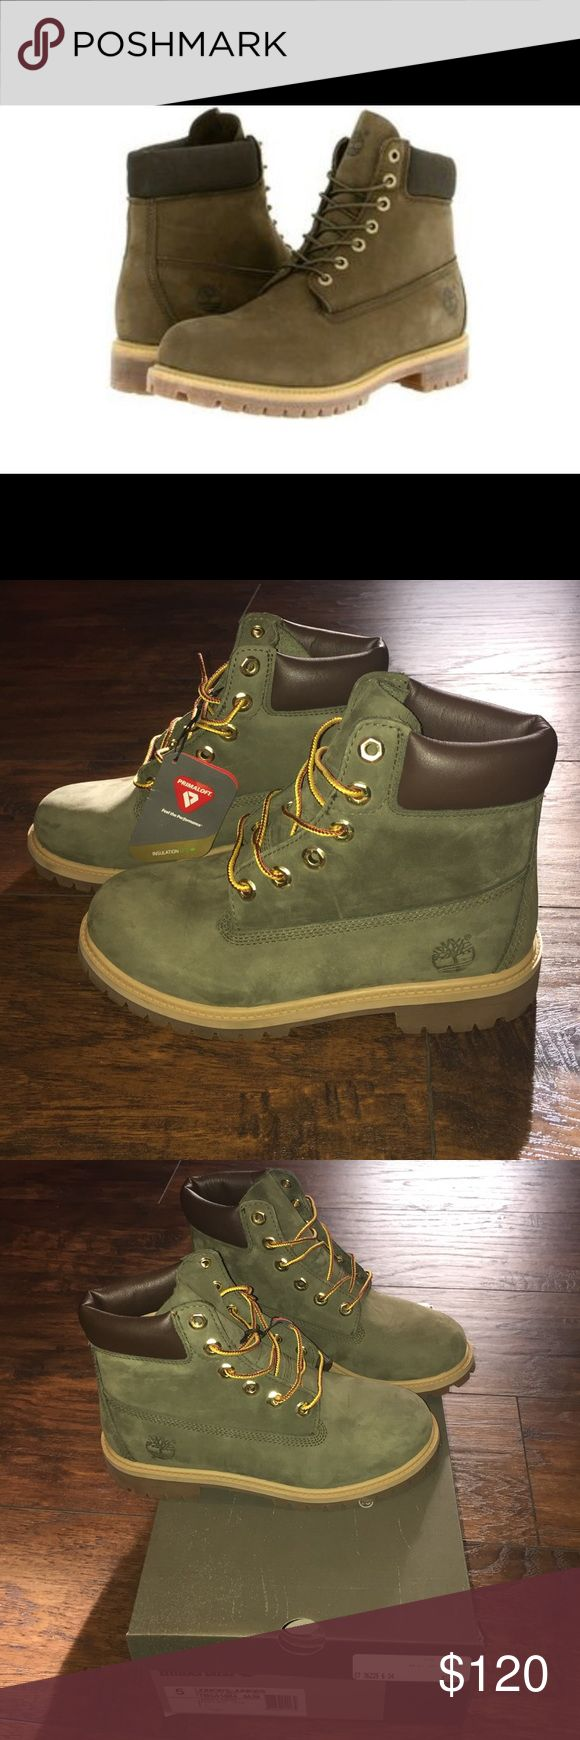 Brand New timberland boots! Suede and waterproof BRAND NEW TIMS! Comes with box (if you want). Forest green color. These are junior size 5 but fit a women's size 7 - 7.5 (I wear a size 7 and these fit perfectly)! I took off the square timberland attachable keychain thing to wear them but ended up not - as you can see from the last pic and bottom of the shoes. Love these boots just not my style! Timberland Shoes